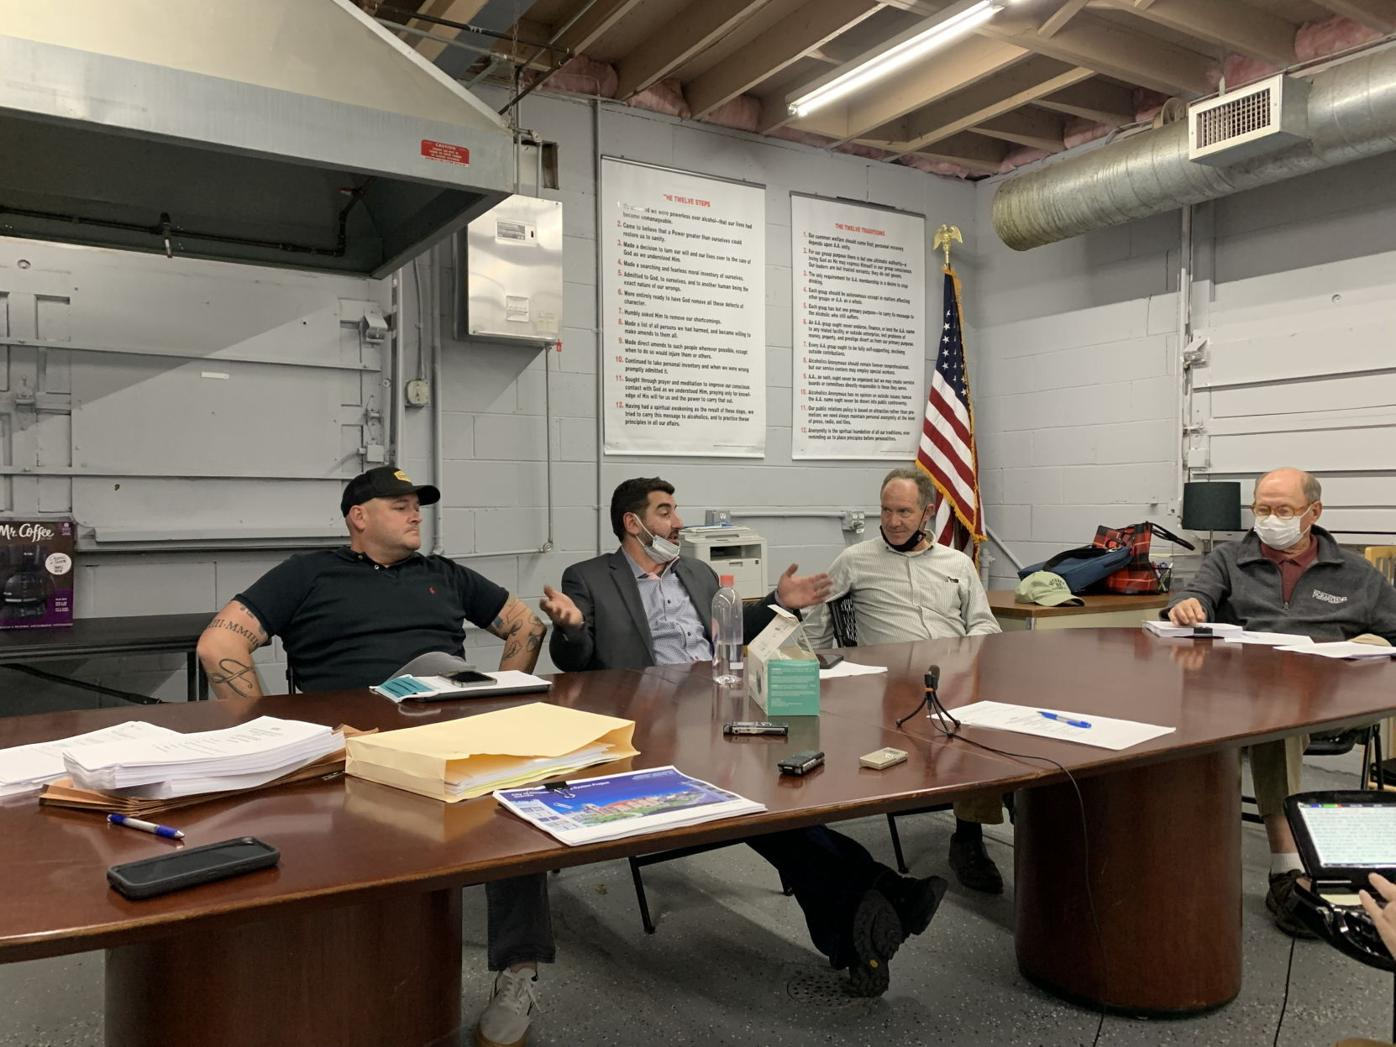 Scranton Parking Authority says street, garage parking rates too high, unsustainable